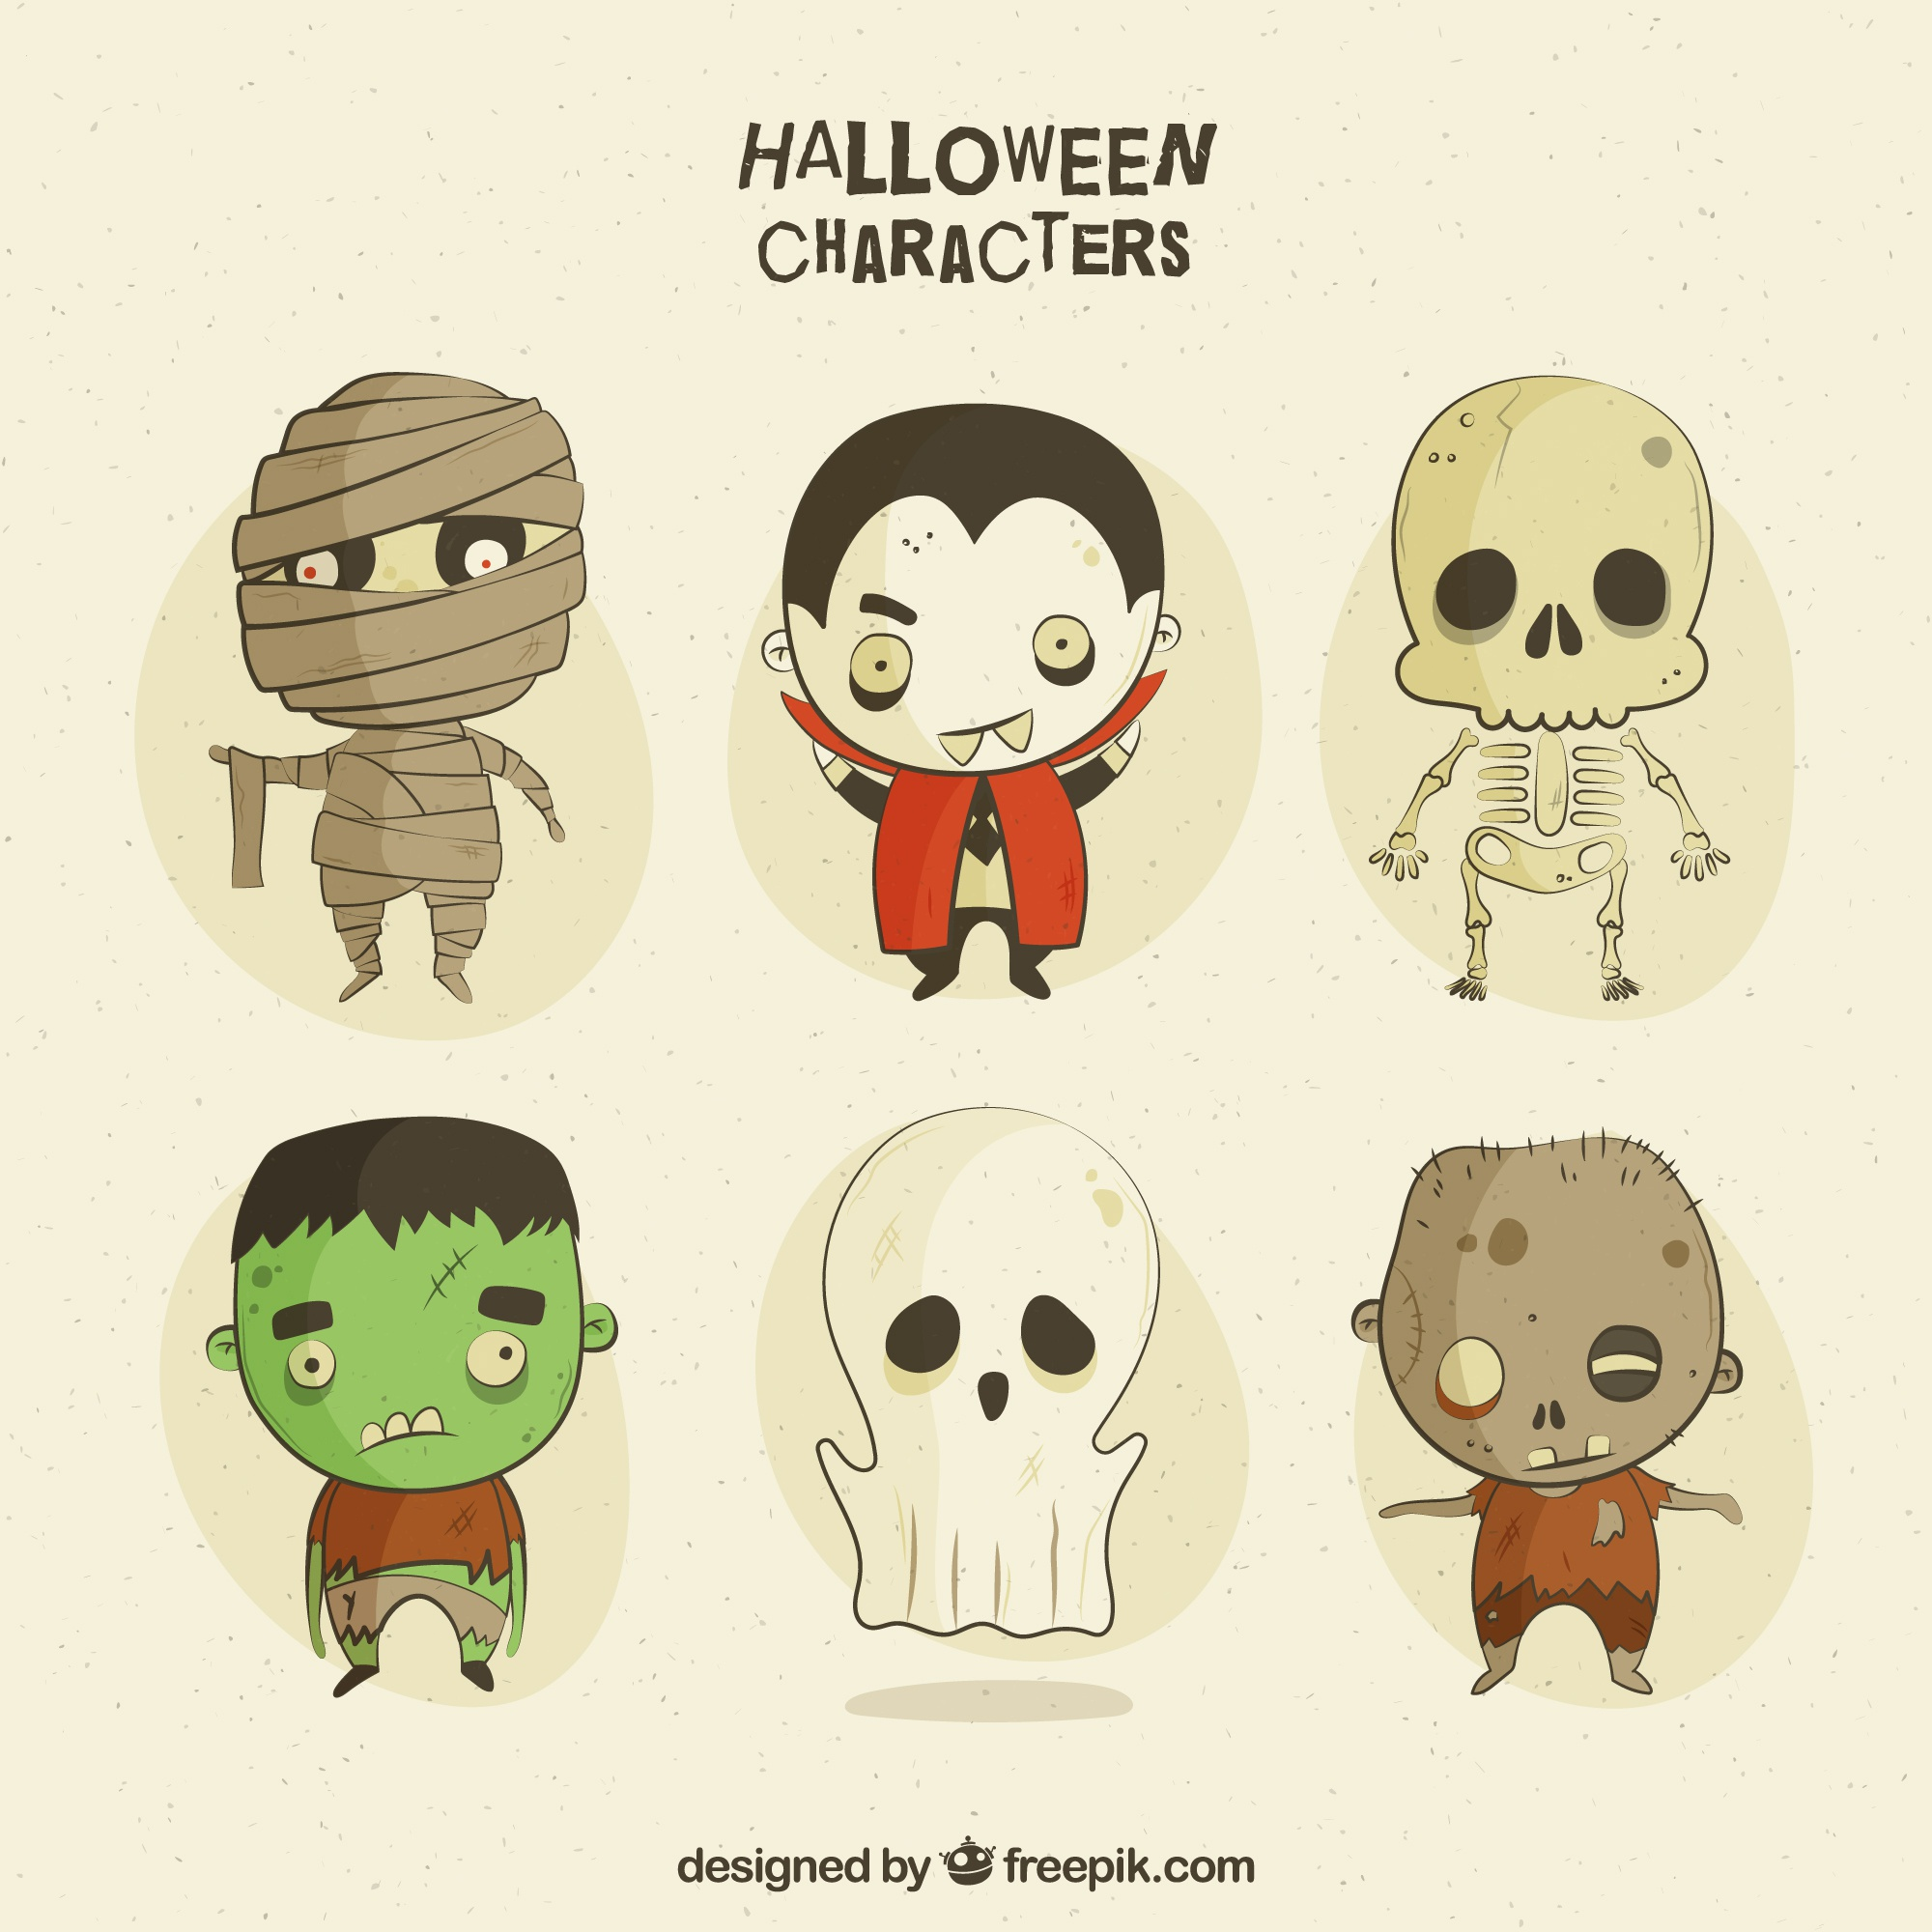 Creepy characters in vintage style